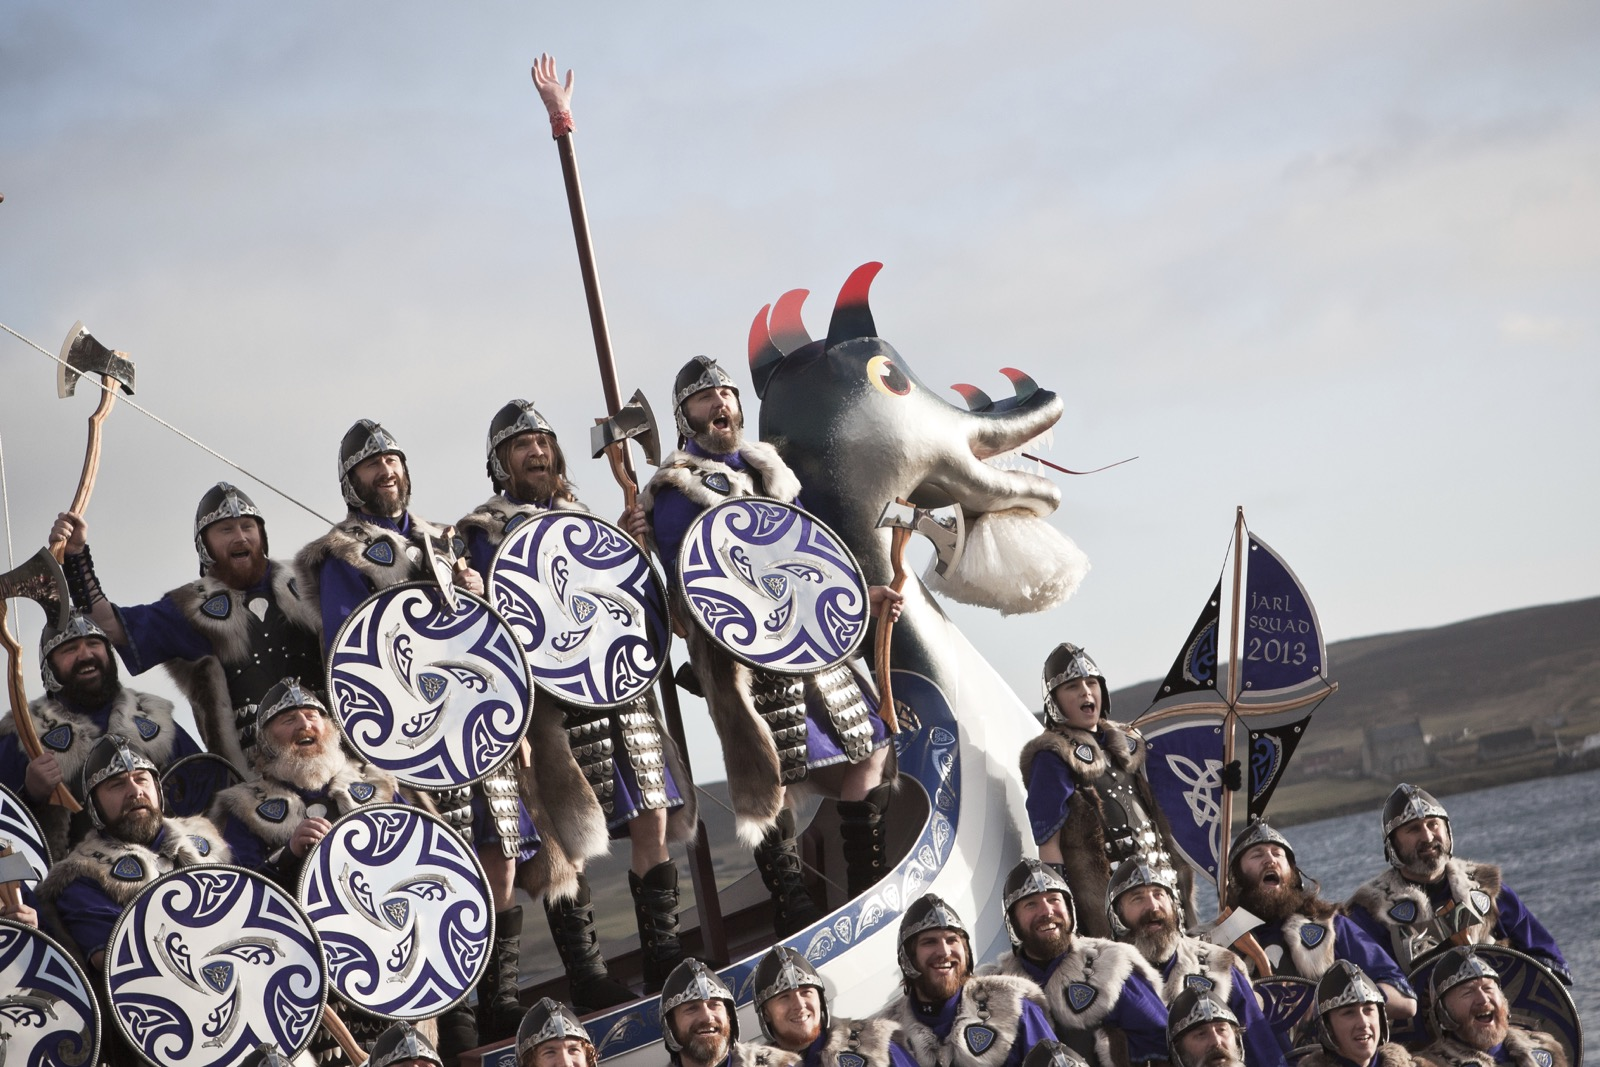 Up Helly Aa Andrew Shearer 11